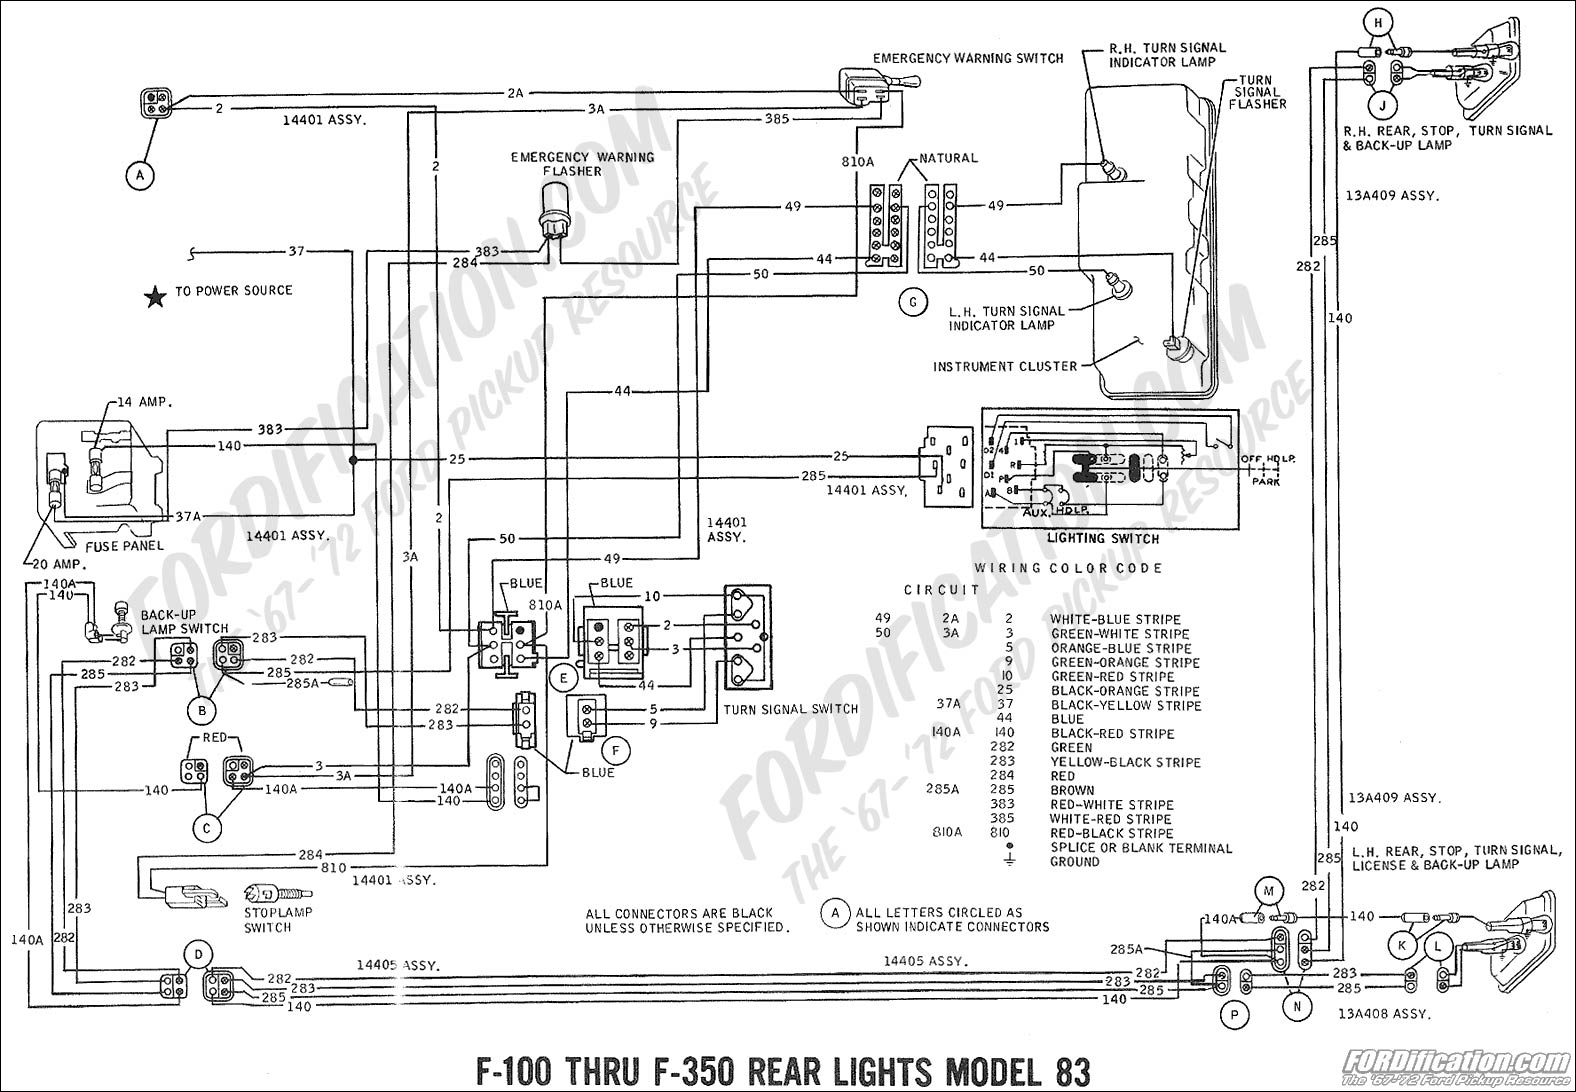 1971 Mustang Engine Wiring Layout Solution Of Your Diagram 83 Harness Fordmanuals Colorized Diagrams 429 Lower Radiator Hose